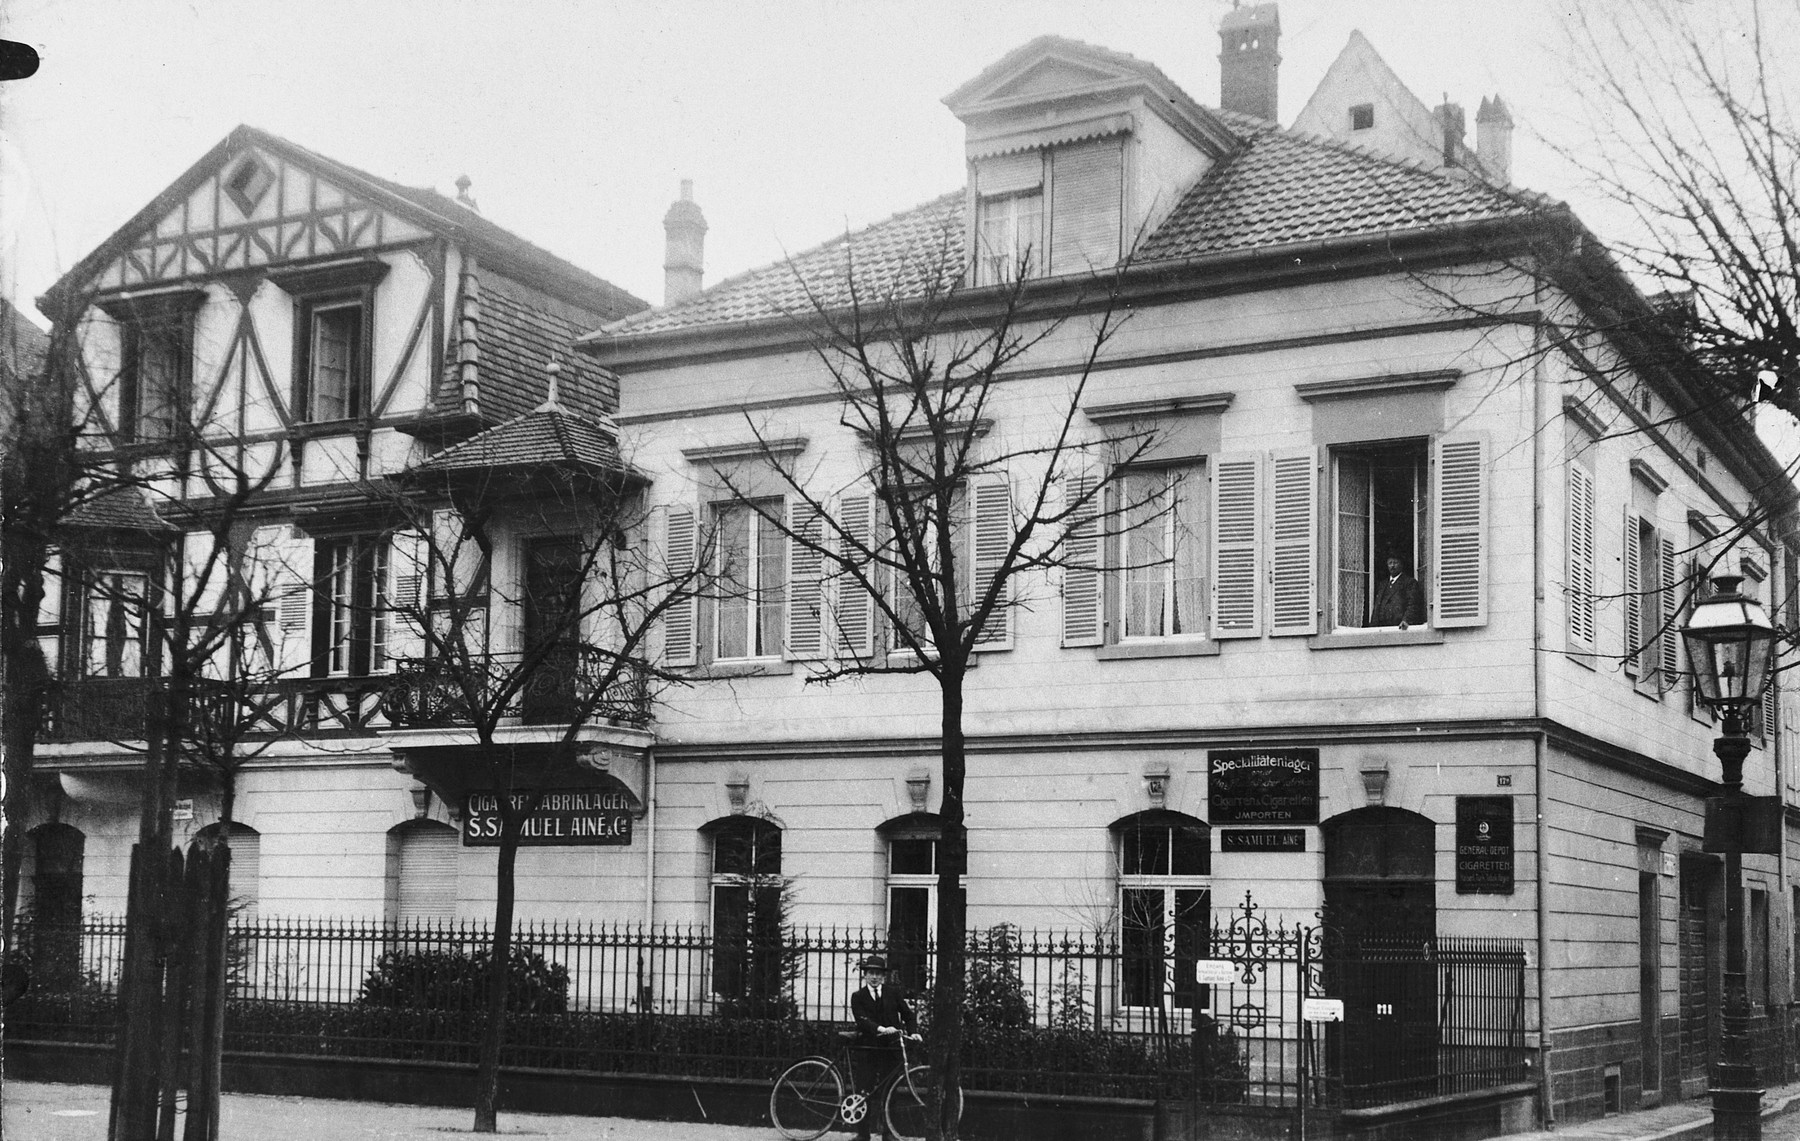 Exterior view of the house of Marianne Schwab's grandfather in Colmar.